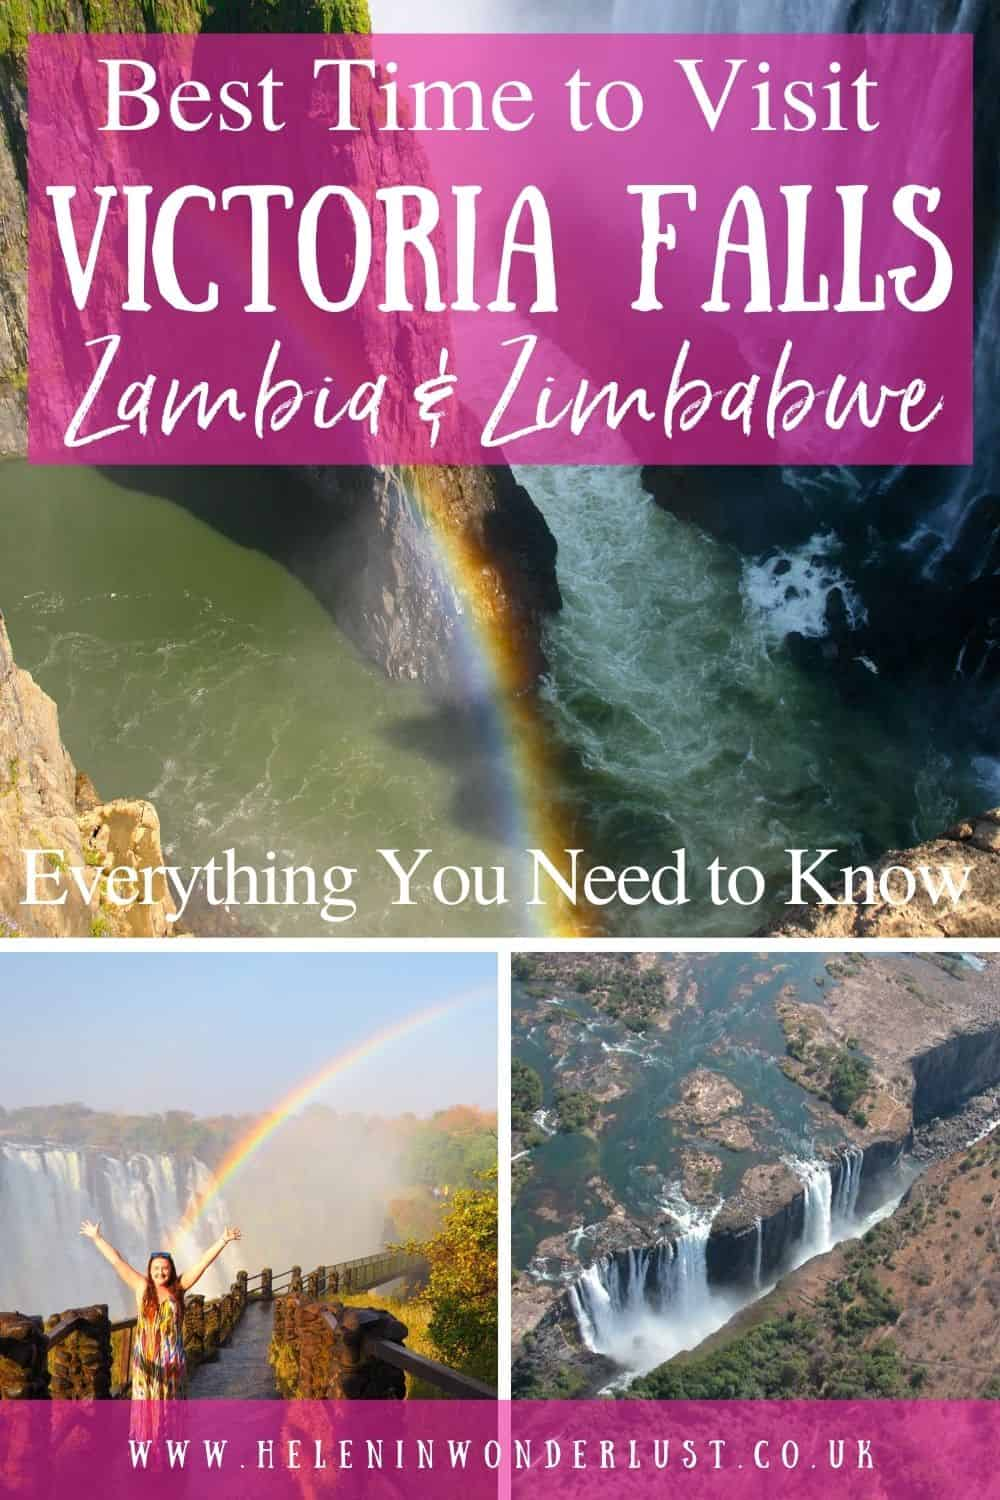 Best Time to Visit Victoria Falls in Zambia & Zimbabwe_ Everything You Need To Know